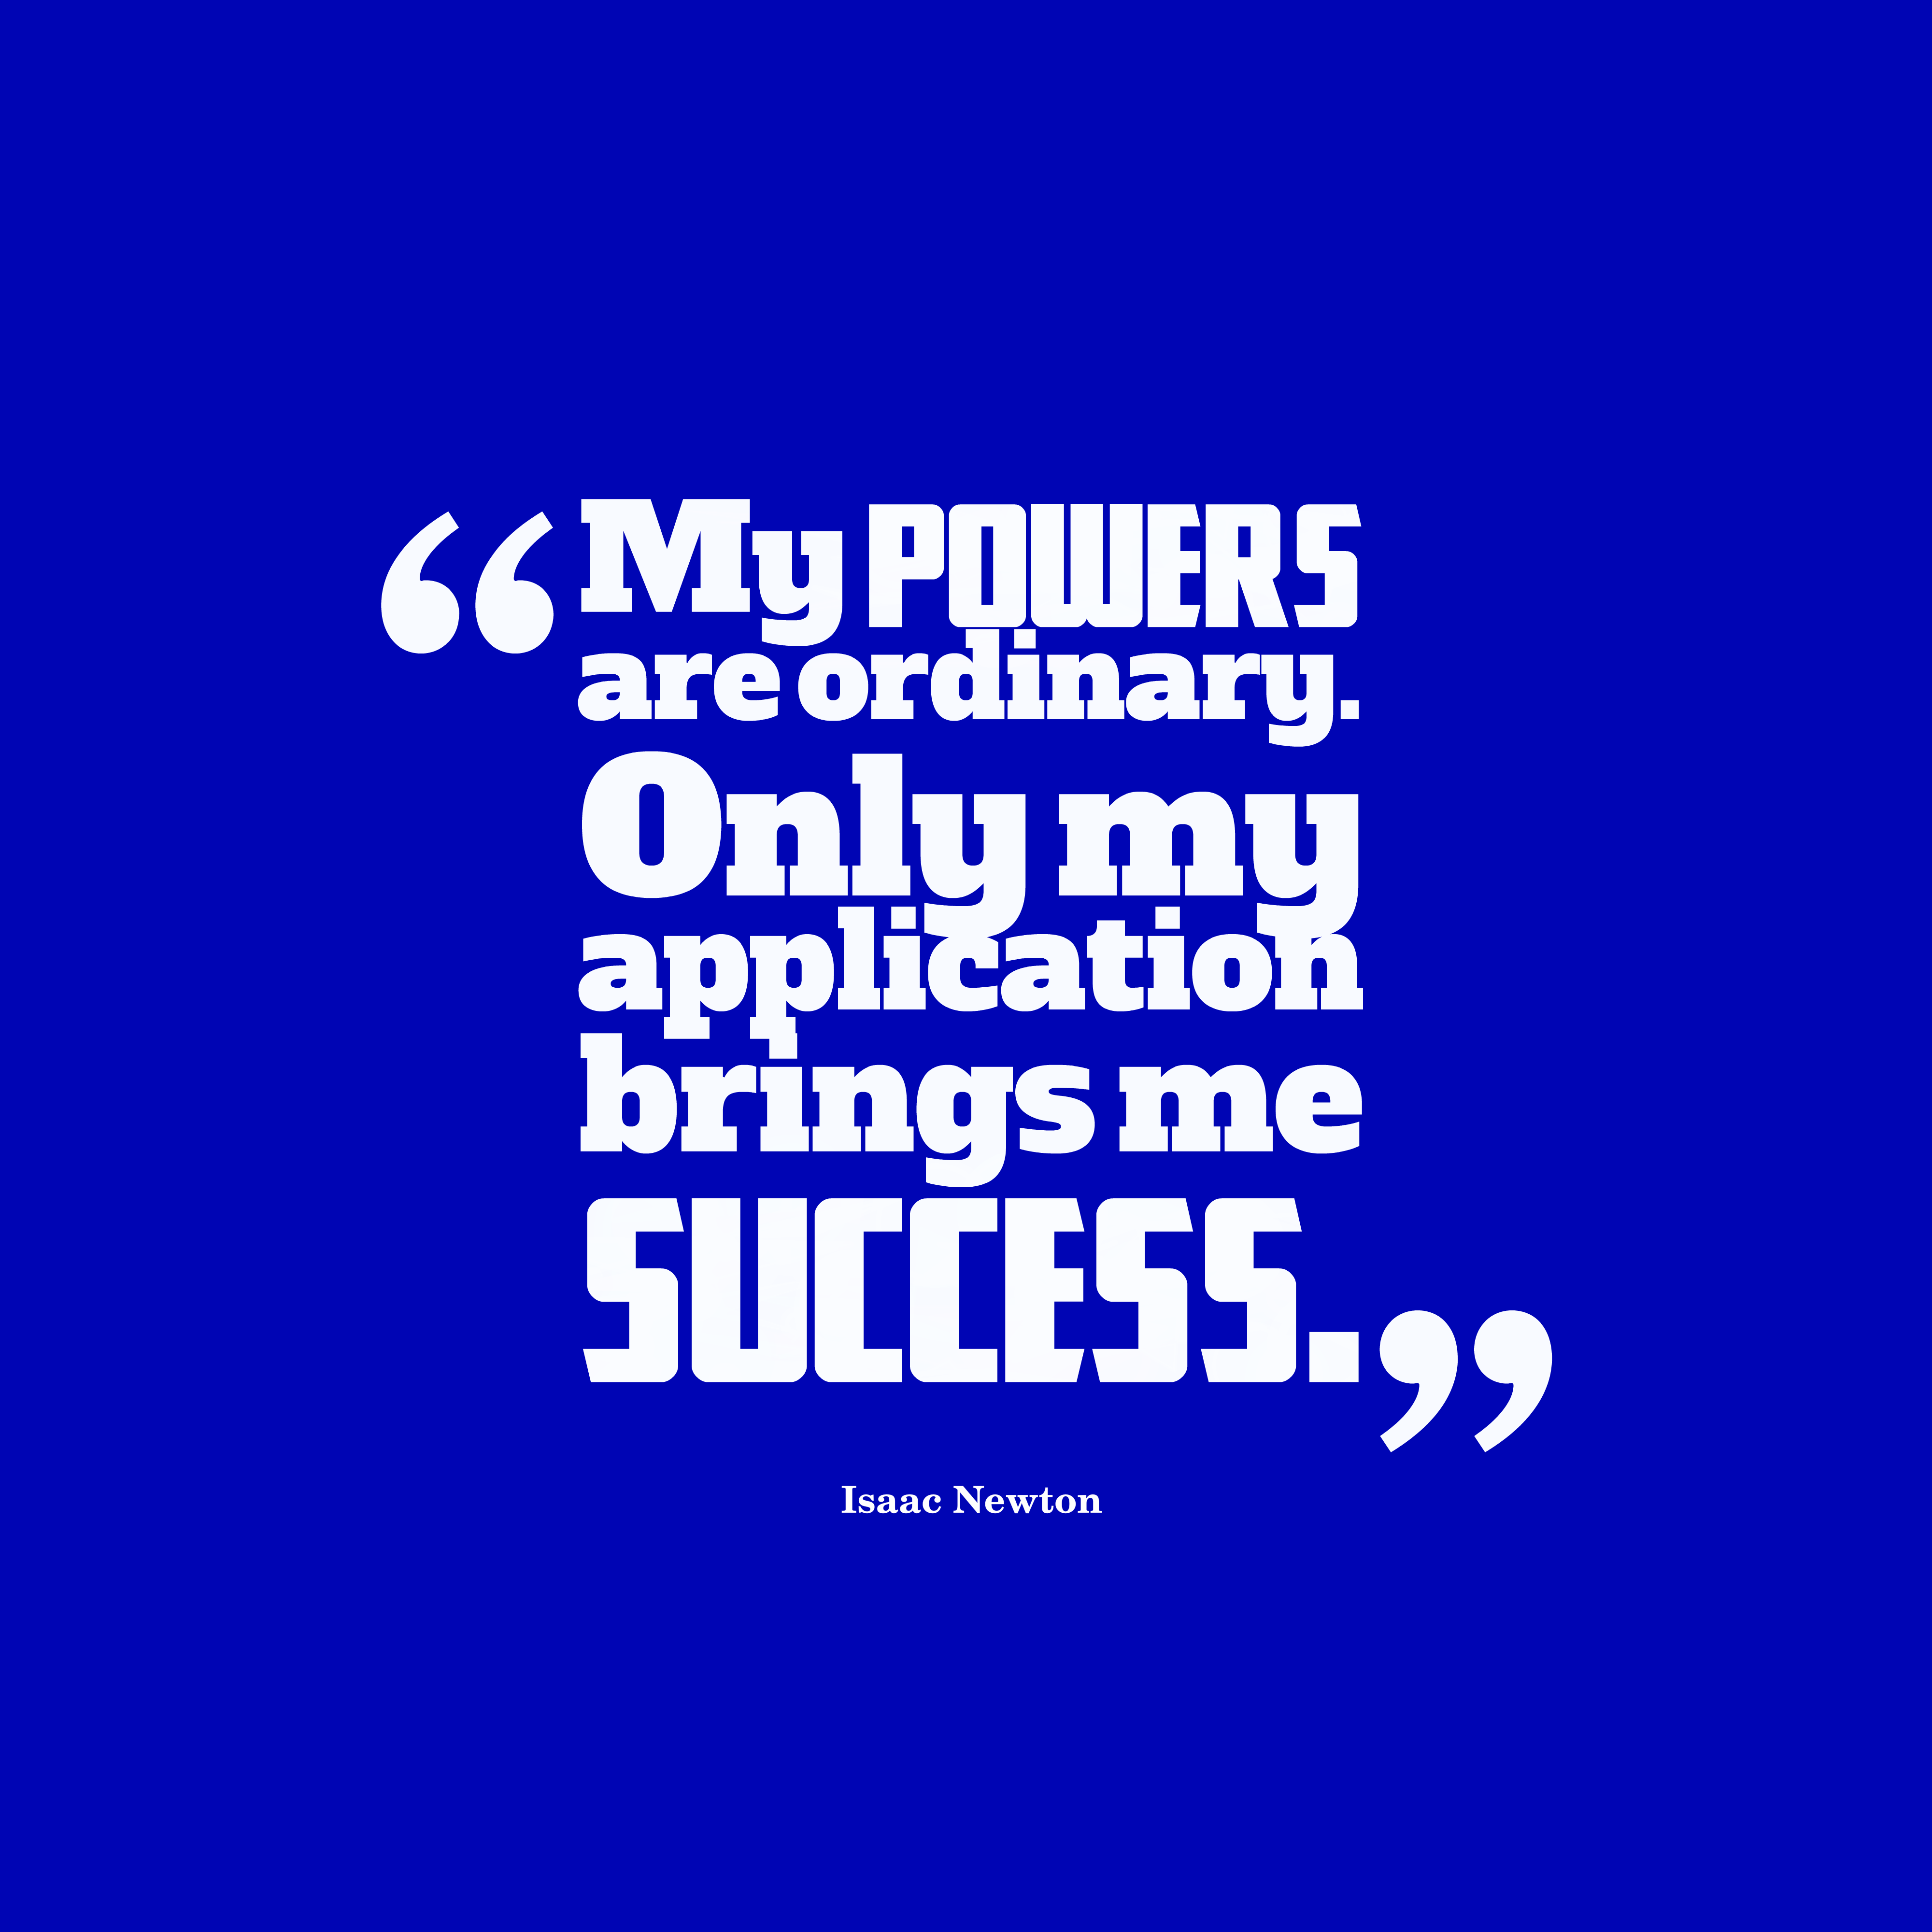 Quotes image of My powers are ordinary. Only my application brings me success.